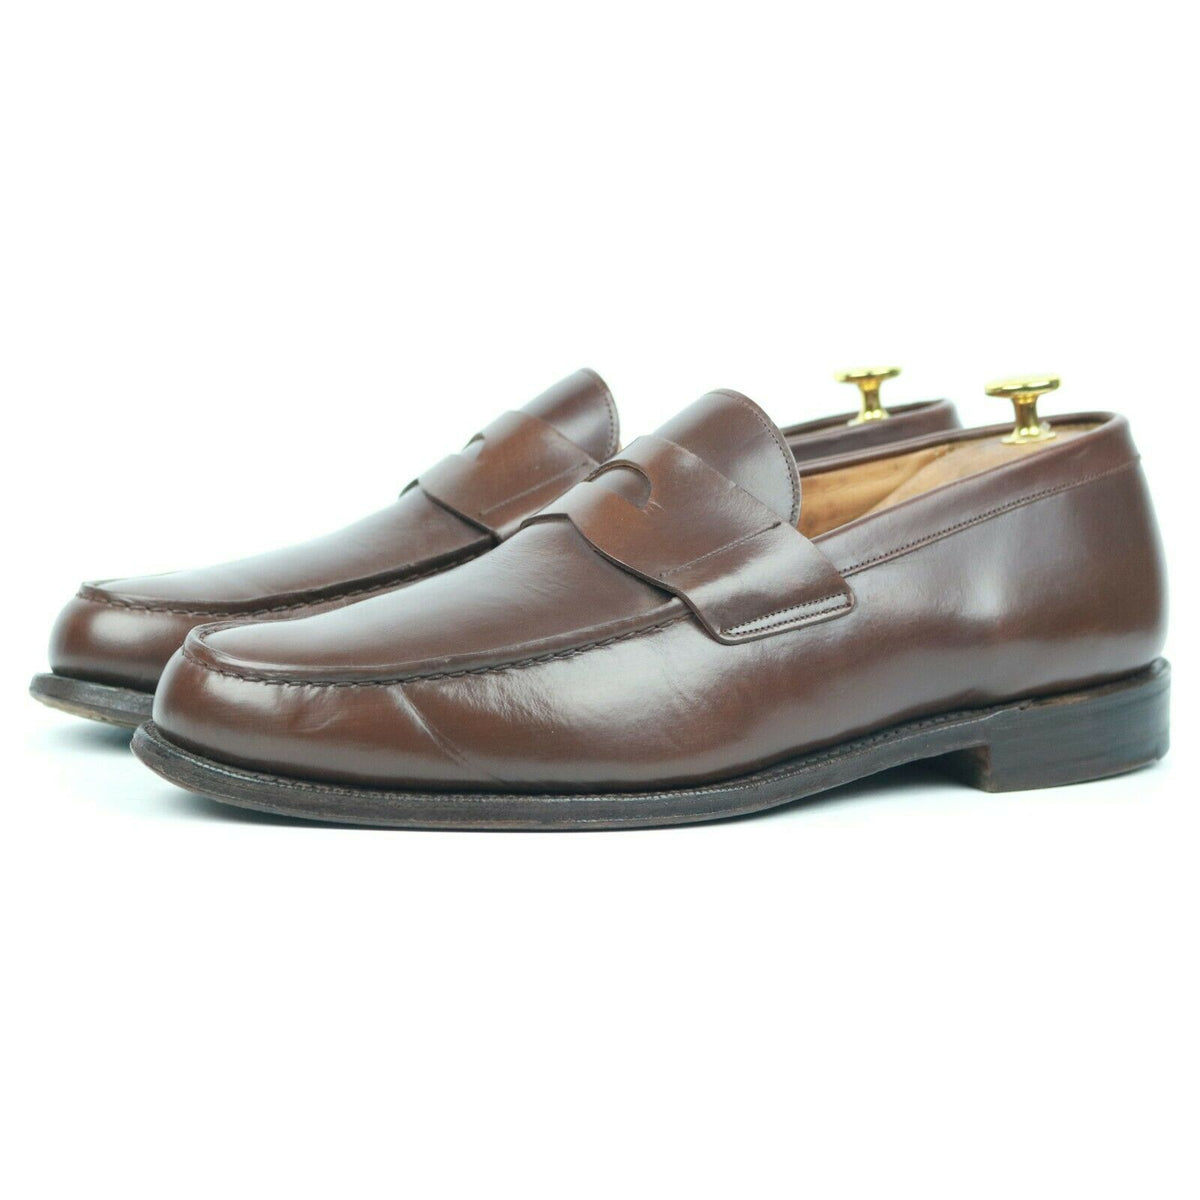 Church's 'Bristol' Brown Leather Loafers UK 9 F